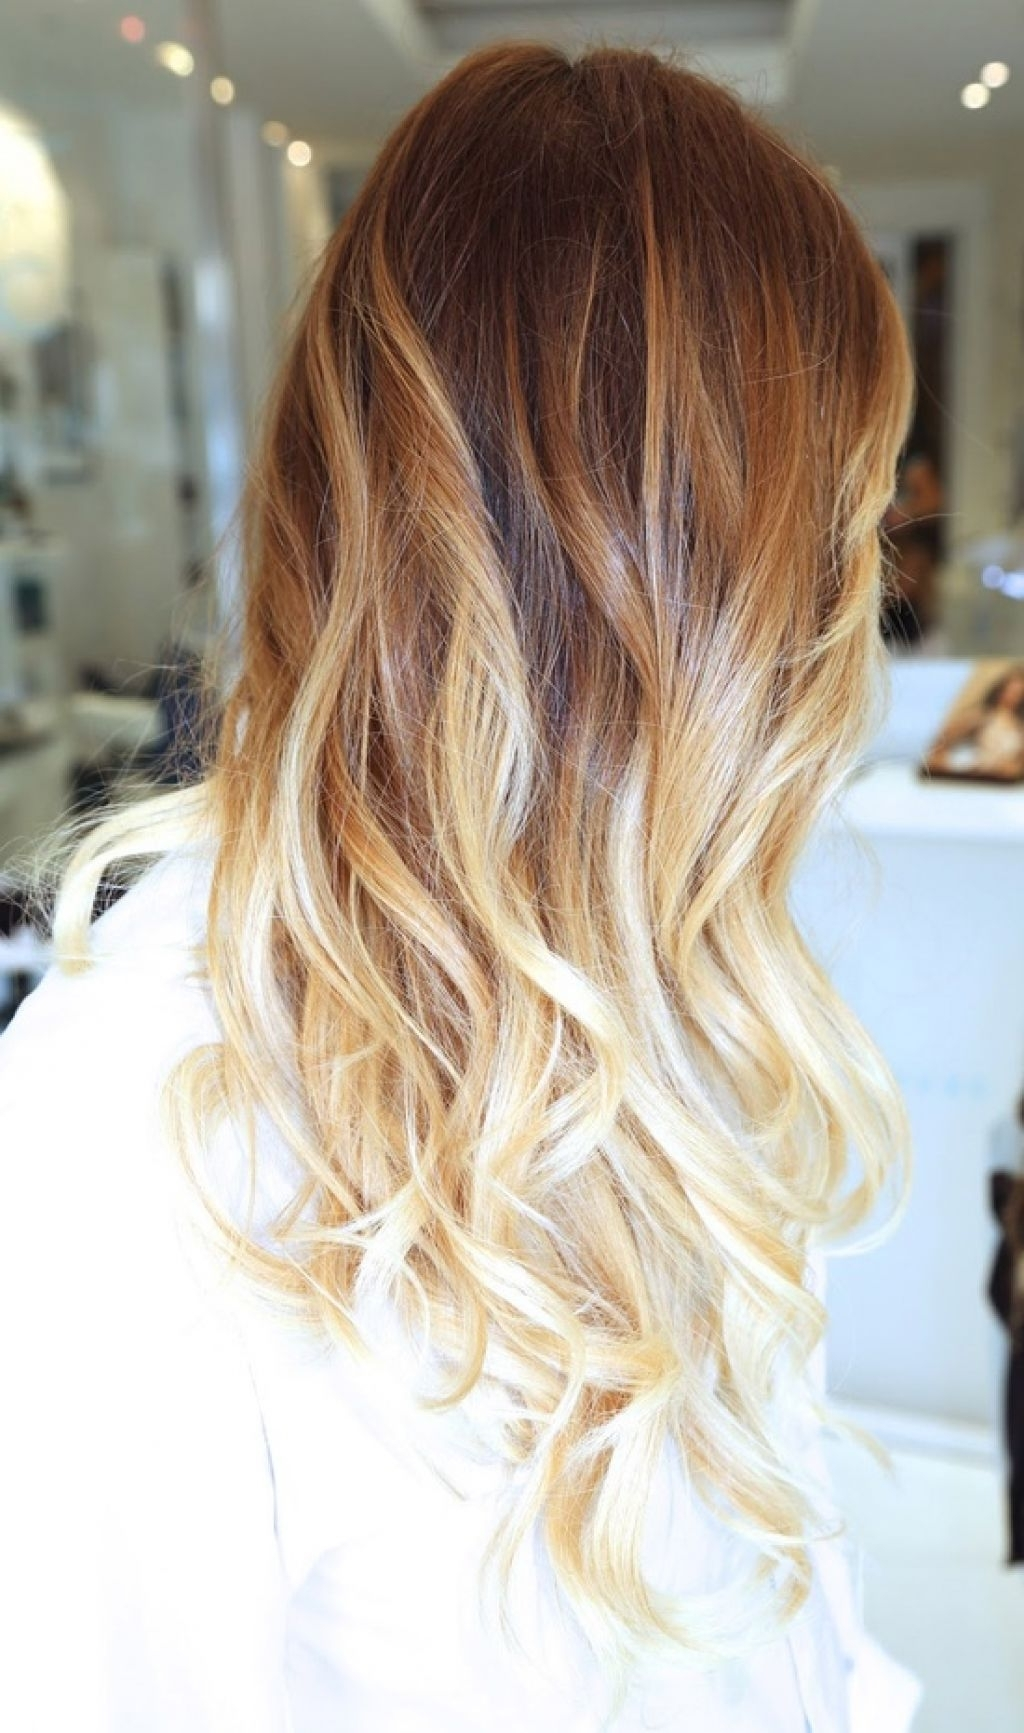 Best And Newest Caramel Blonde Hairstyles With Caramel Hair With Honey Ombre Hairstyle Color – Girly Hairstyle (View 4 of 20)